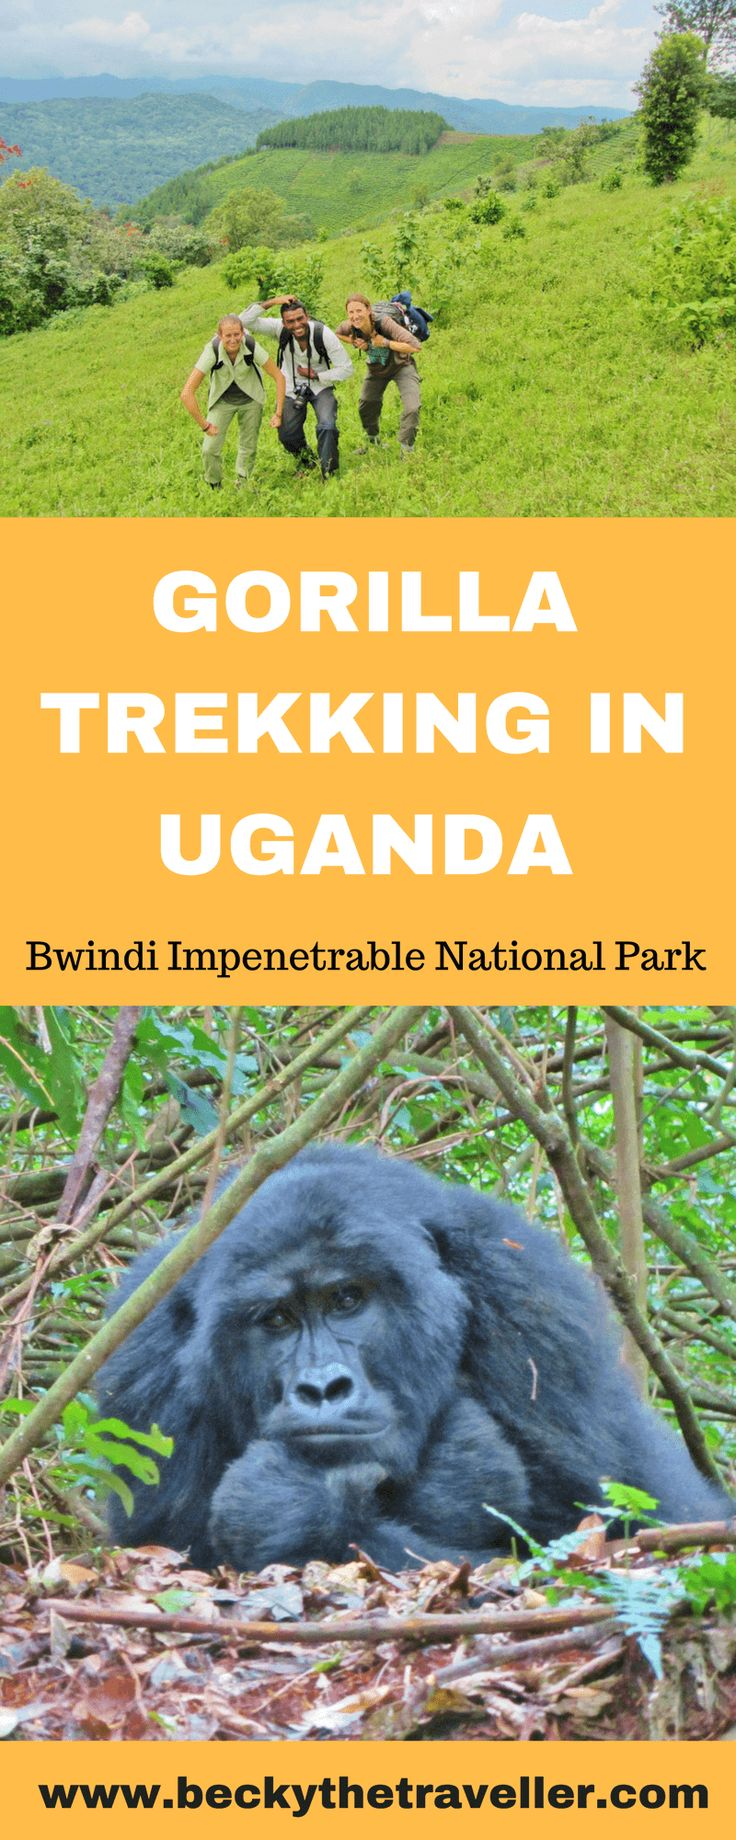 Gorilla trekking in Uganda – seeing the beautiful mountain gorillas. Is gorilla trekking in Uganda on your bucket list? But maybe the high costs are putting you off. Read about my experience gorilla trekking in Bwindi Impenetrable National Park in Uganda. I share my experience and give you some top tips for the trek. Wildlife experiences | Gorilla trekking | Gorilla safaris | Uganda gorillas | Visit Uganda